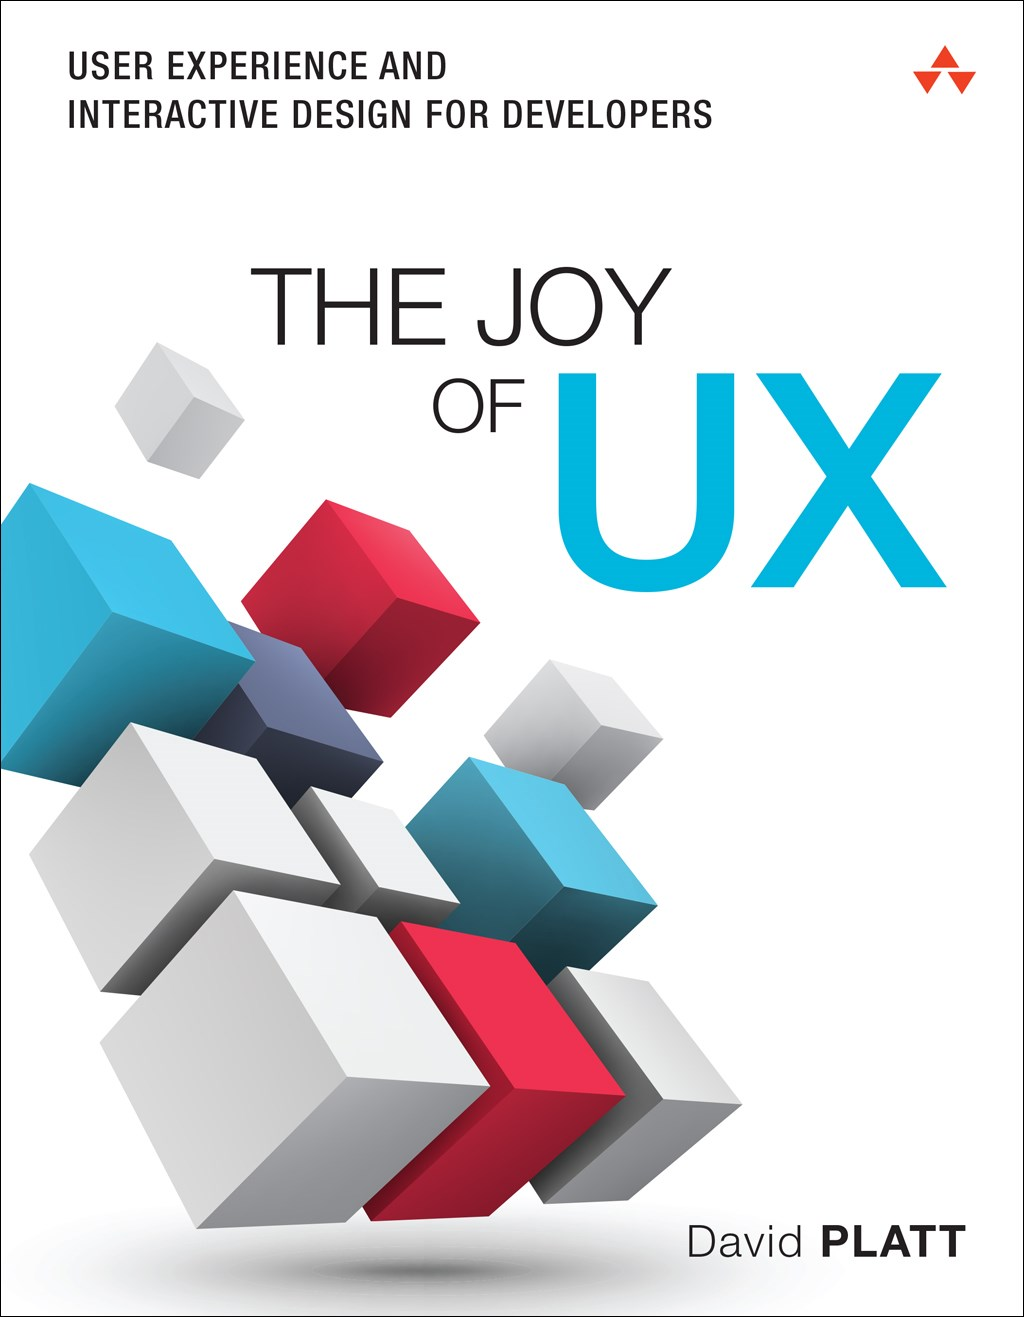 Joy of UX, The: User Experience and Interactive Design for Developers